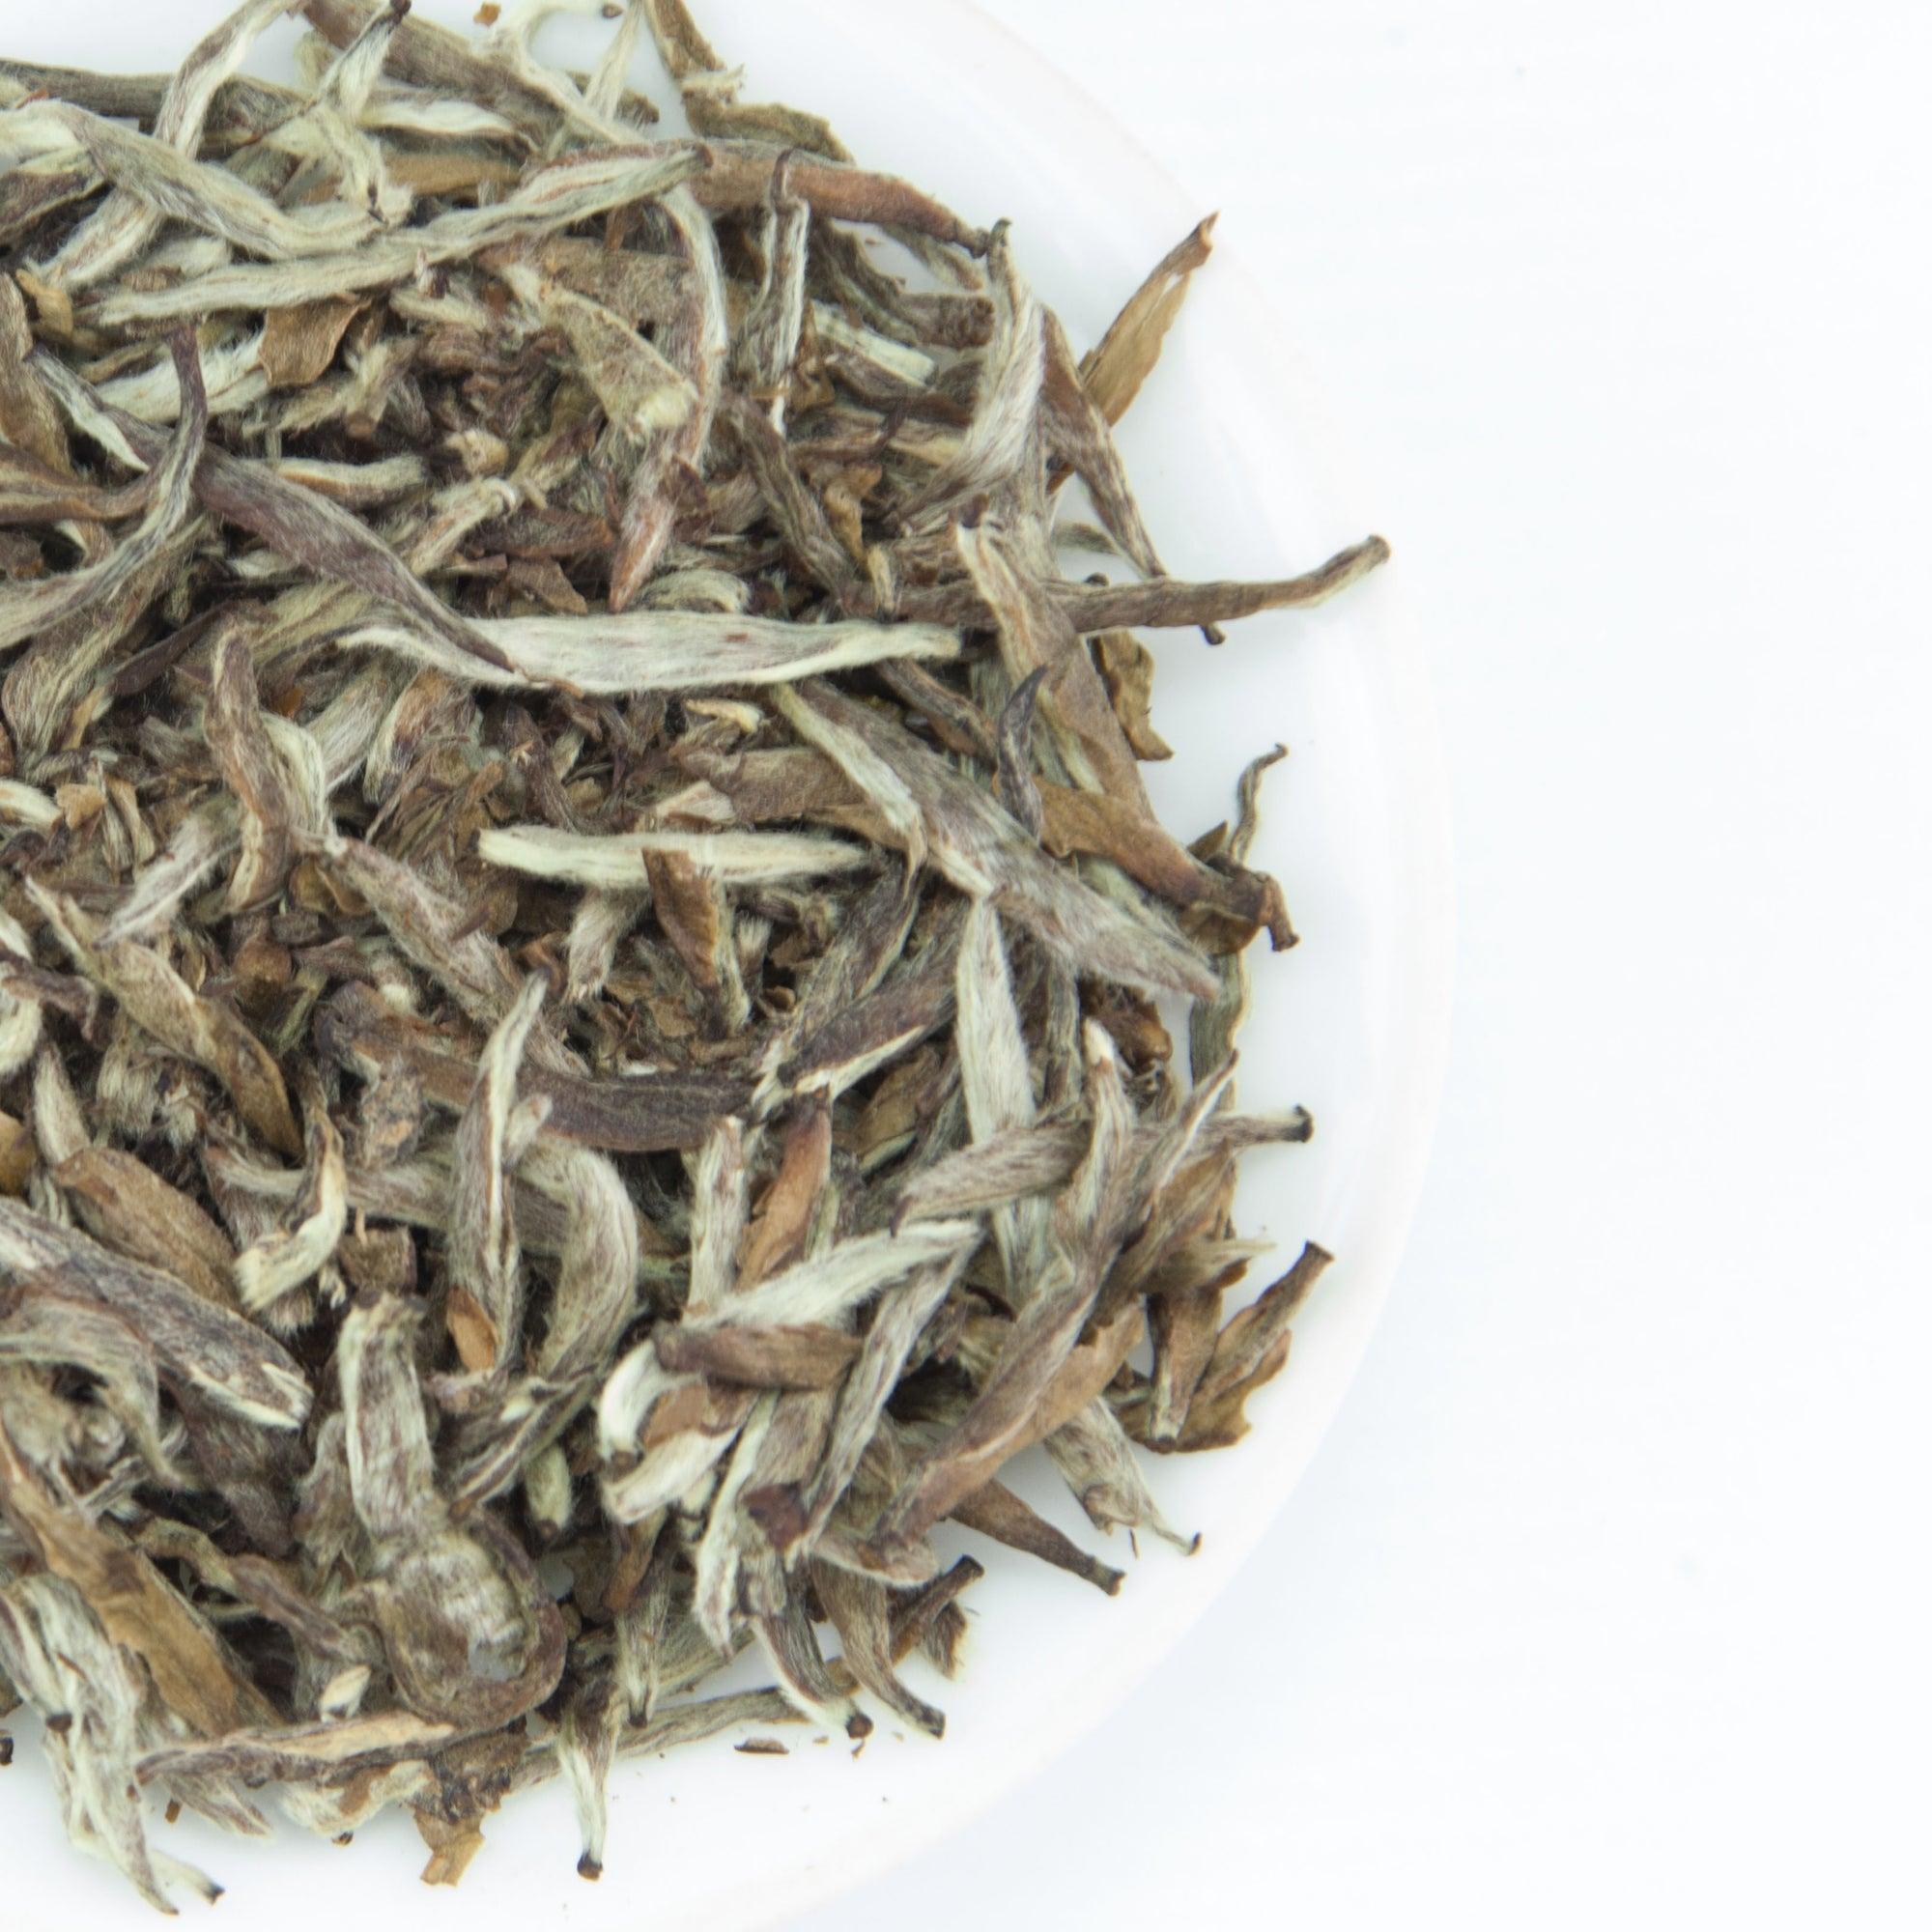 2012 Aged Silver Needle White Tea